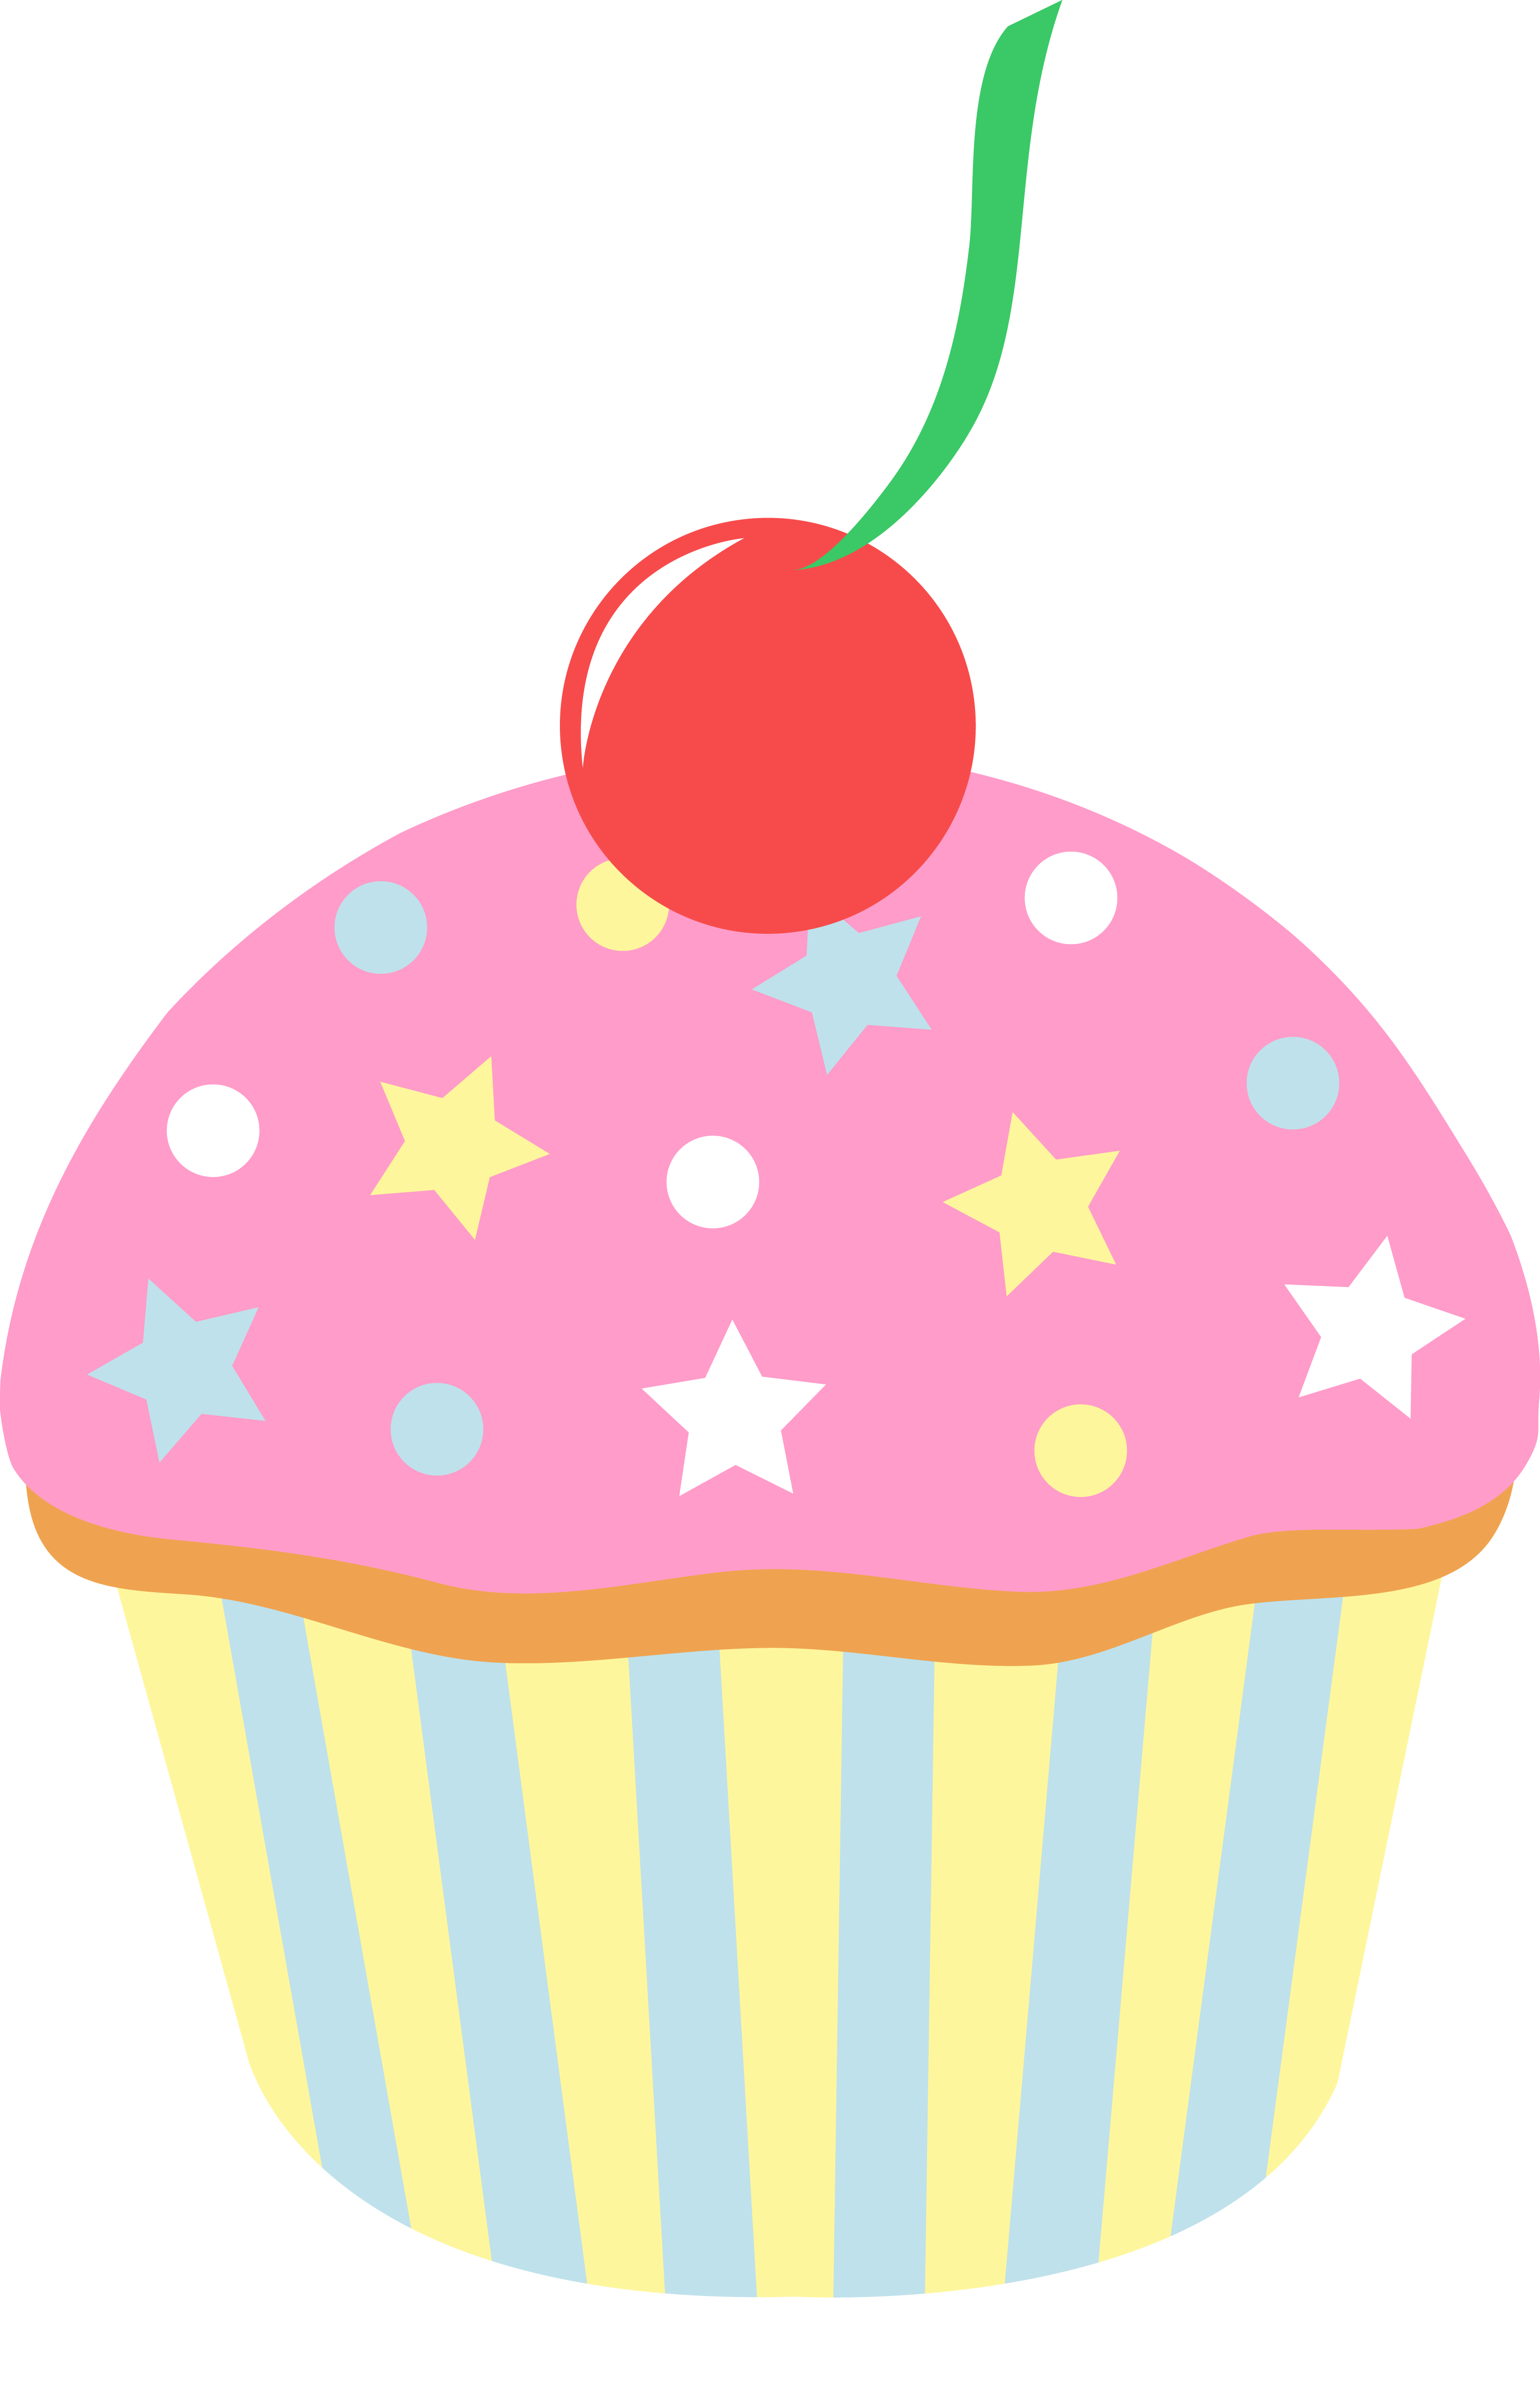 Muffin clipart strawberry cupcake Cherry Clip Free Cupcake Strawberry